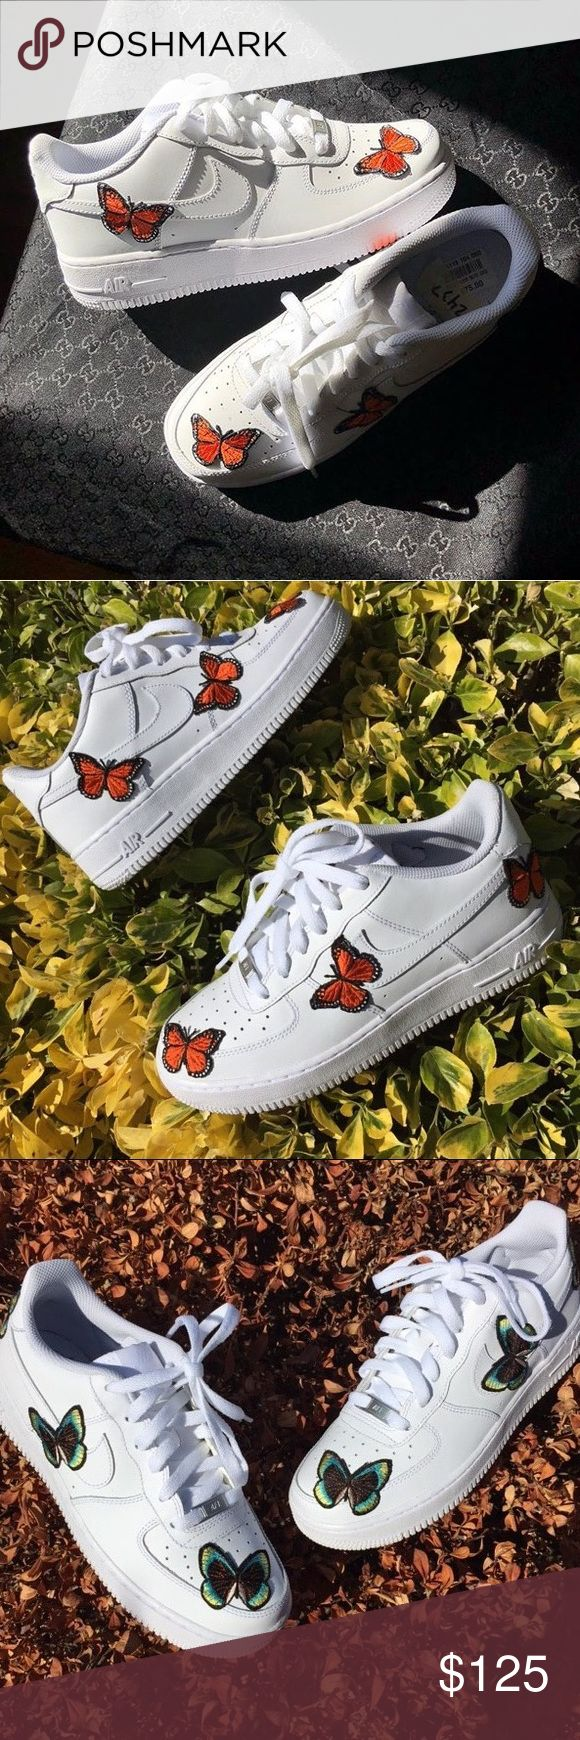 Custom Butterfly Embroidered Nike Air Force 1 Low